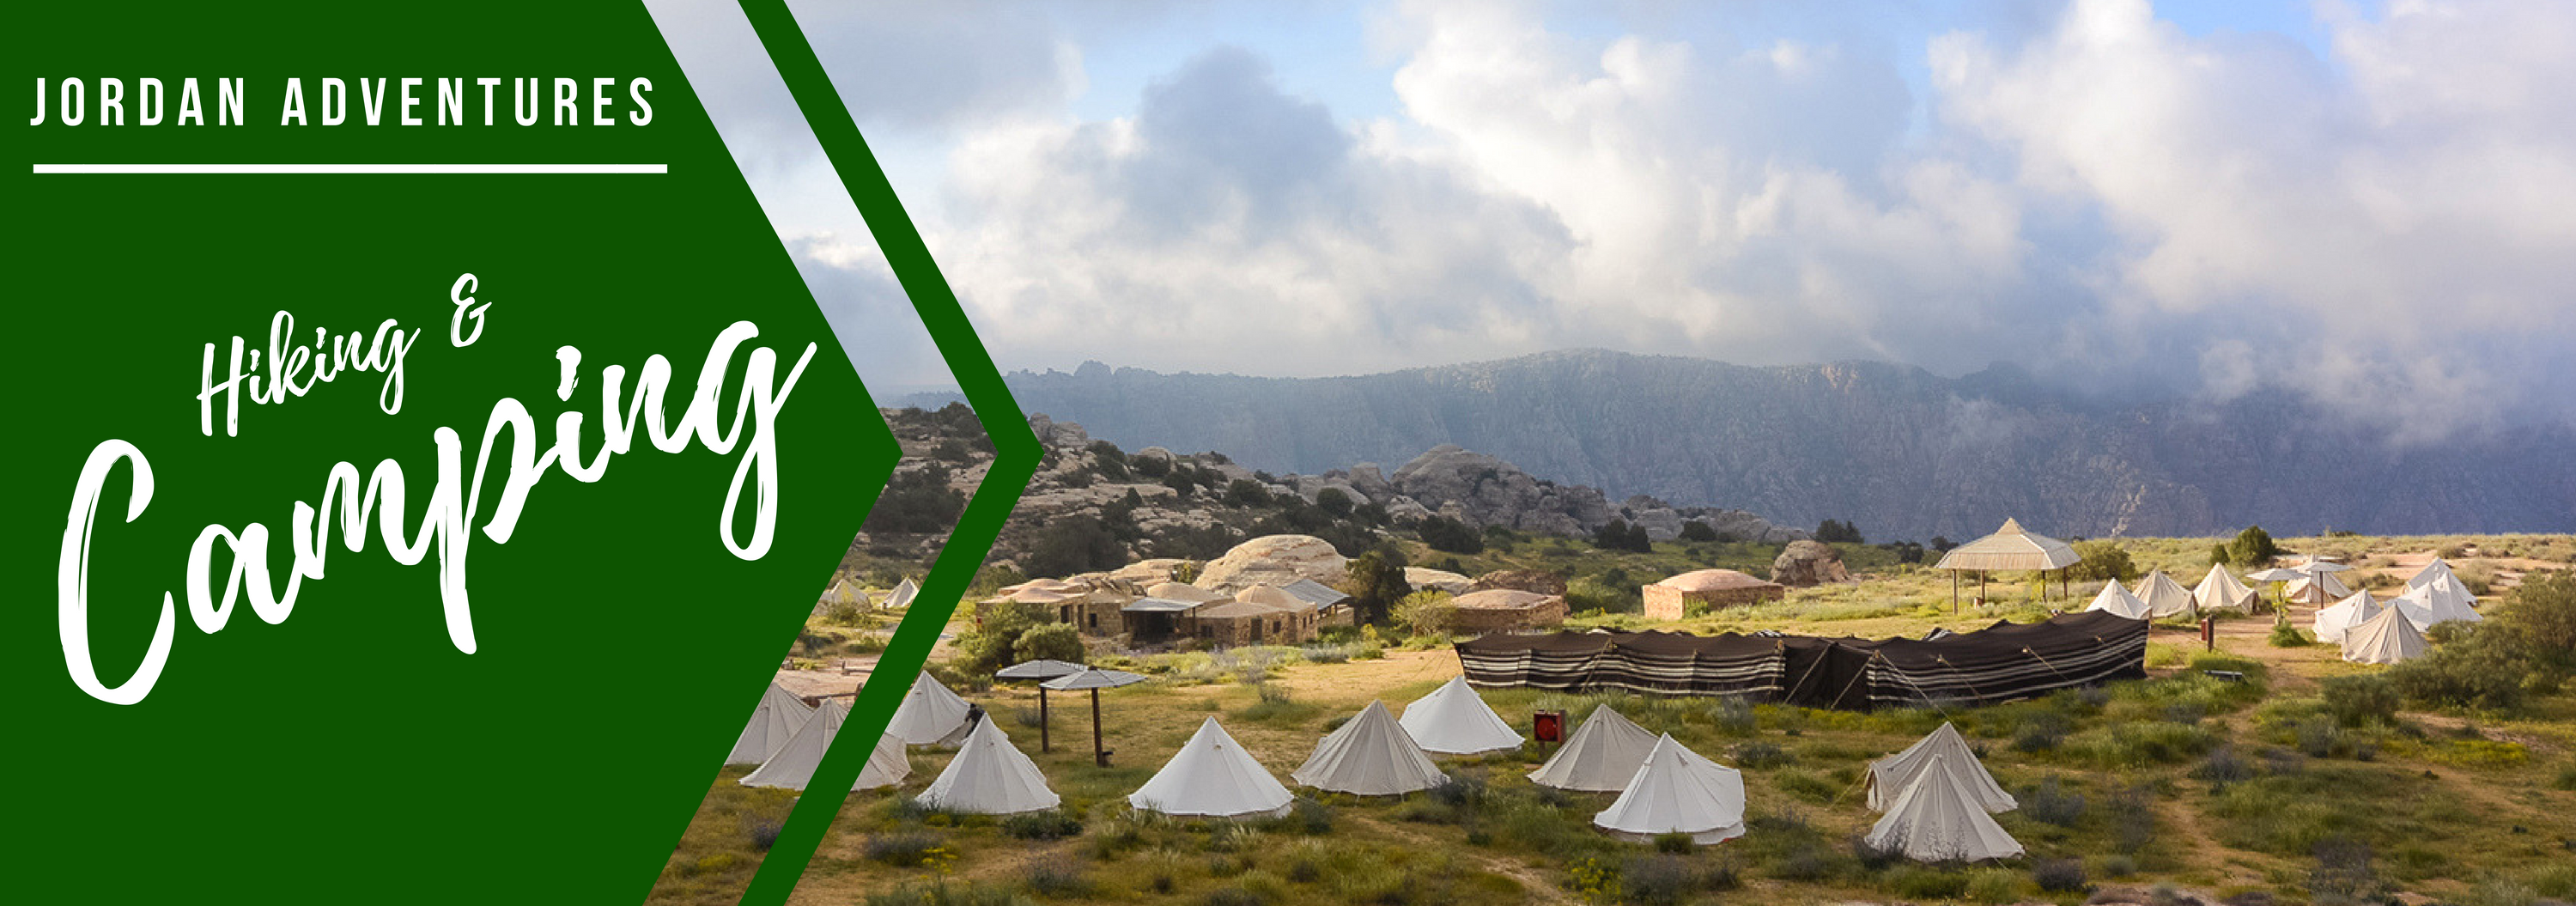 Jordan Adventures - Hiking and Camping